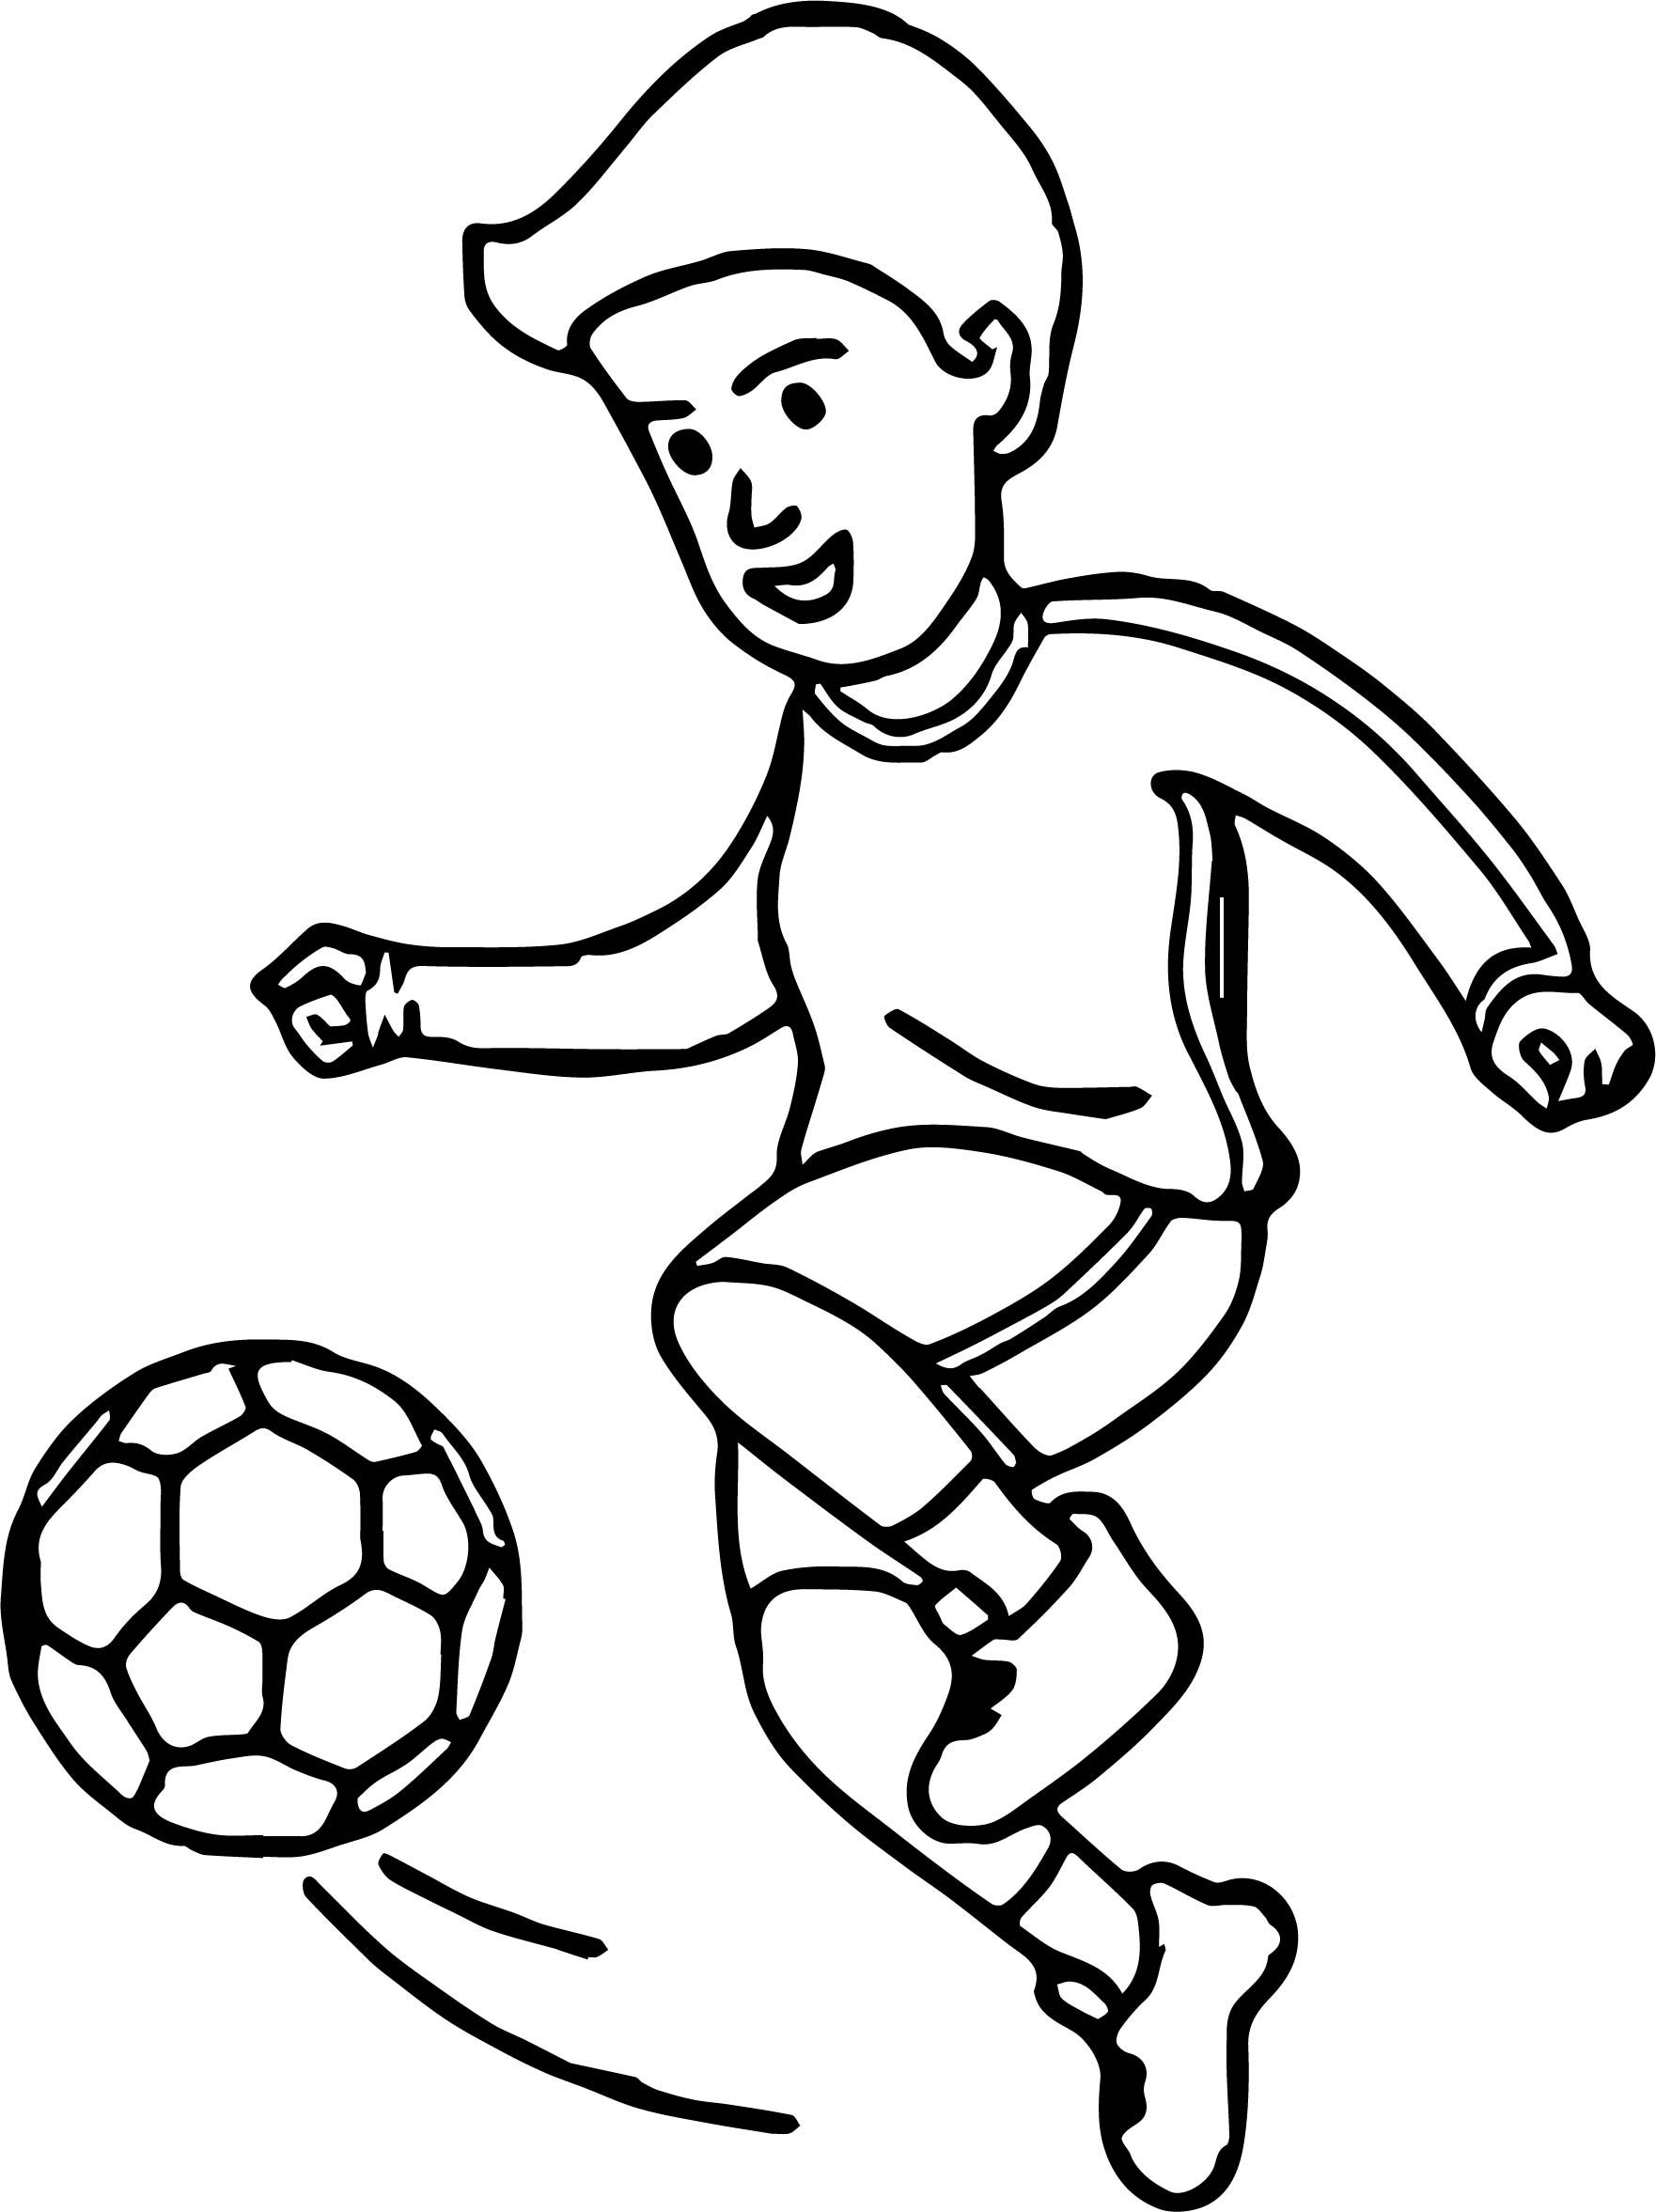 Nice Soccer Cartoon Playing Football Coloring Page Football Coloring Pages Soccer Drawing Football Player Drawing